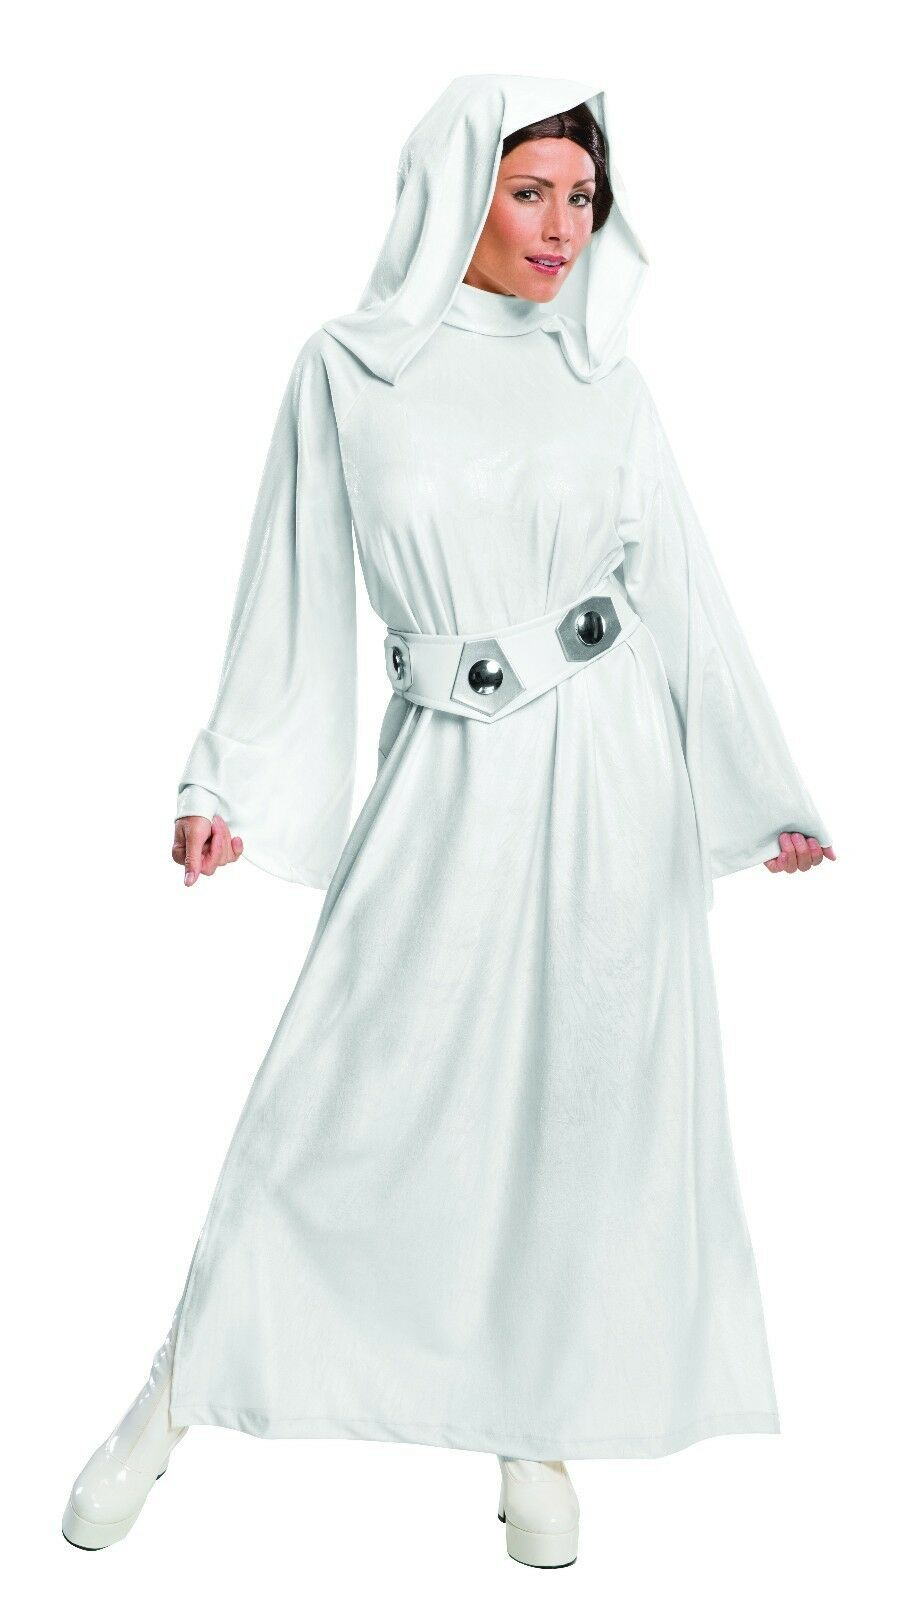 Primary image for Rubies Princess Leia Hooded Star Wars Adult Womens Halloween Costume 810357